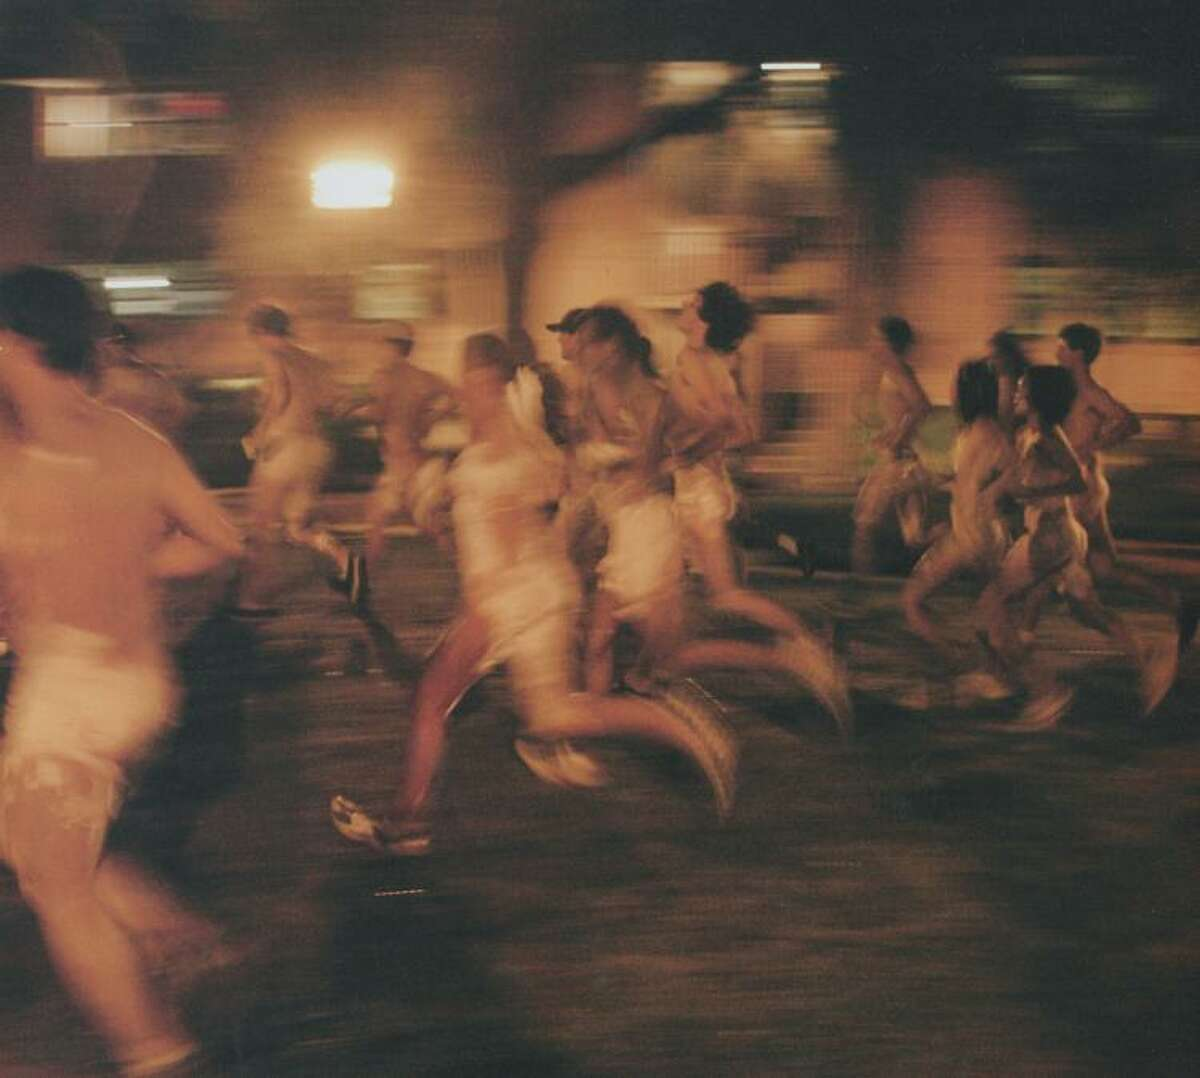 Writer Lisa Gray shares the story of a group of streakers at Rice University who have adapted their code of conduct to pandemic-era precautions.